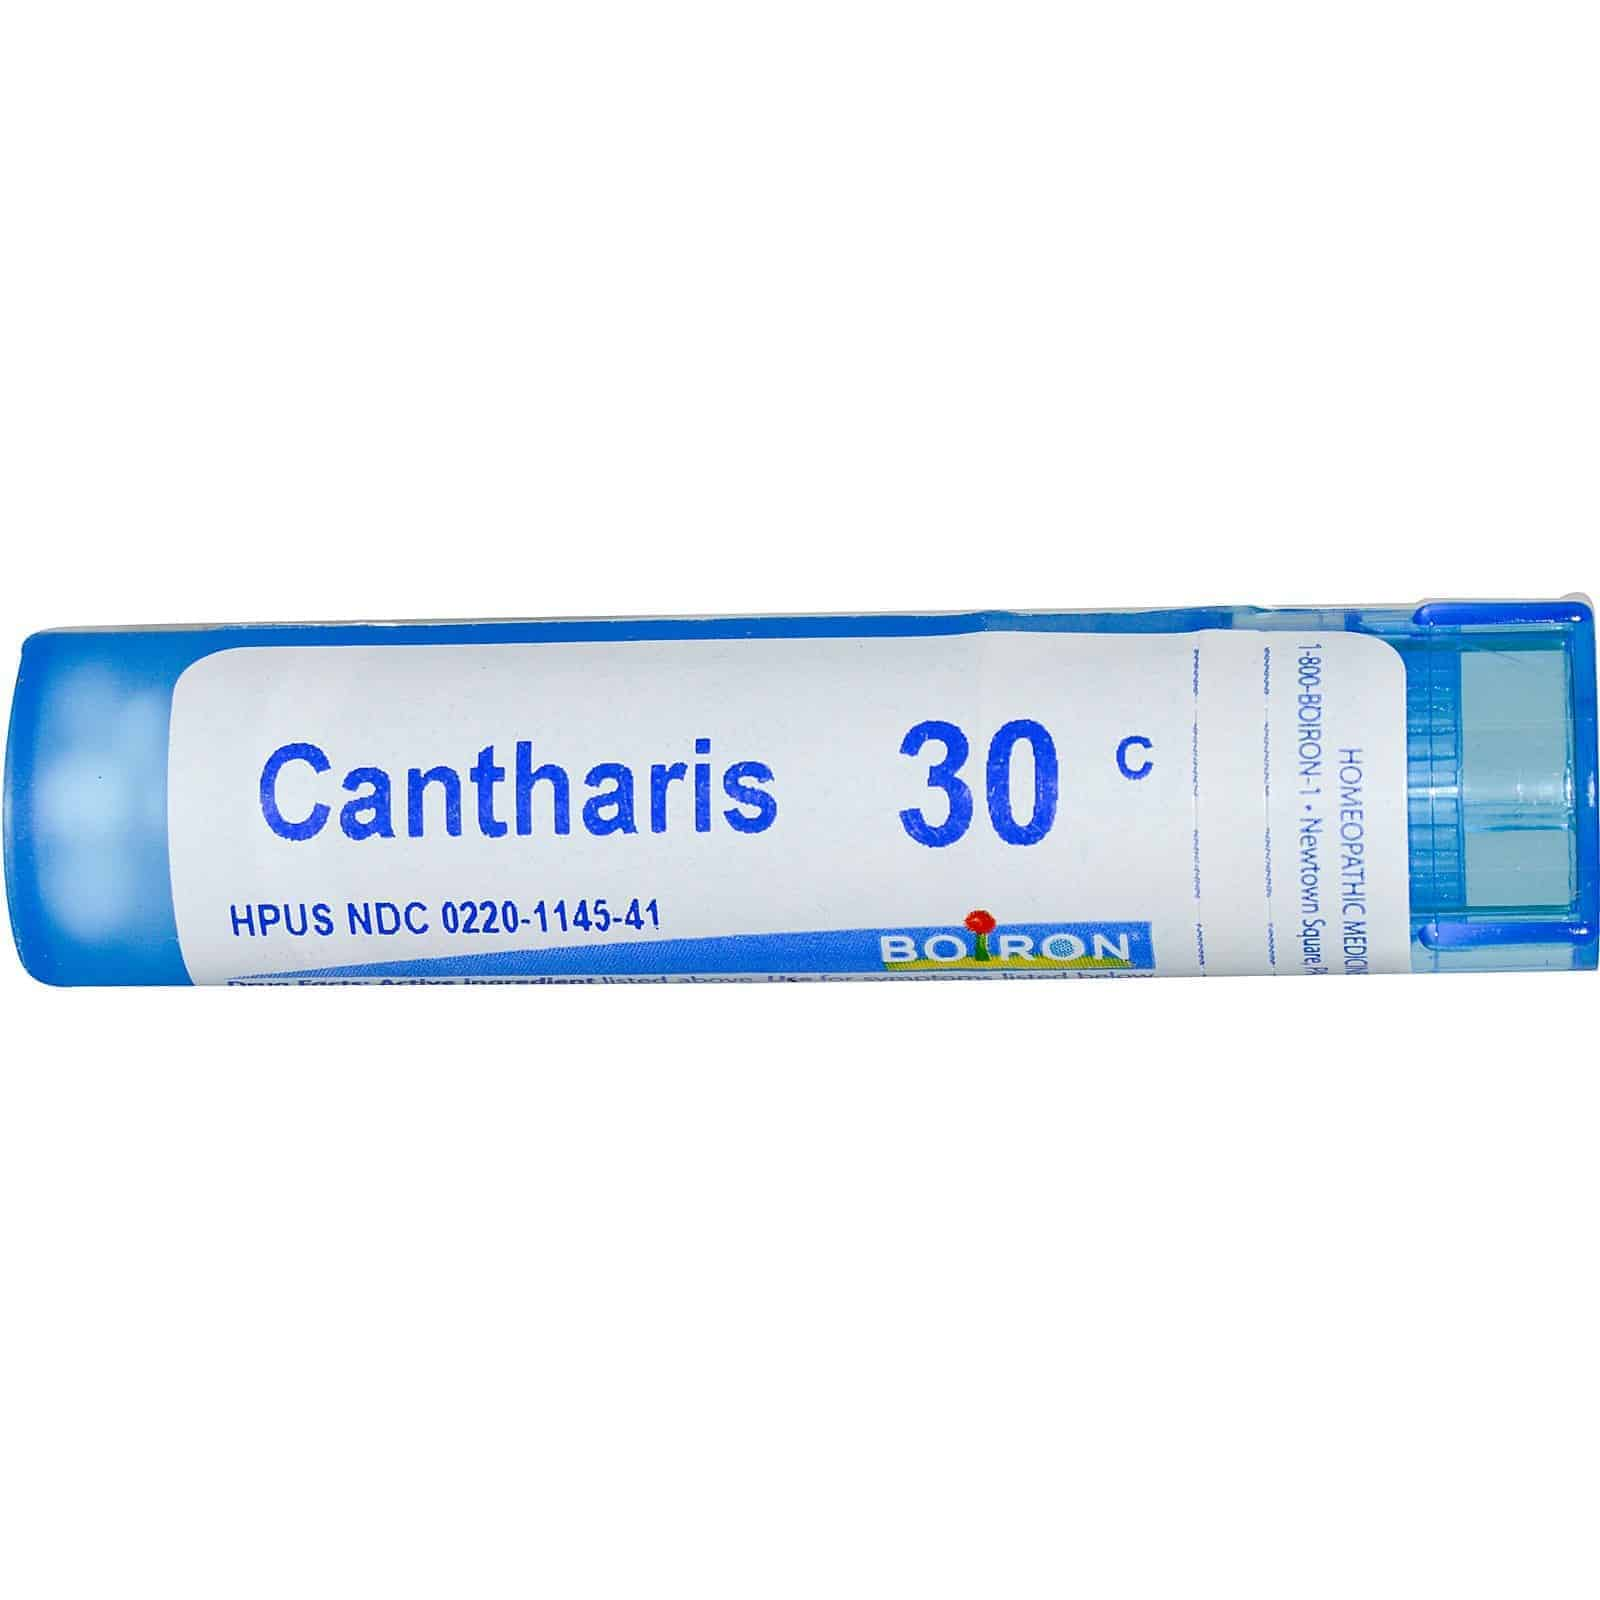 pellets of Cantharsis